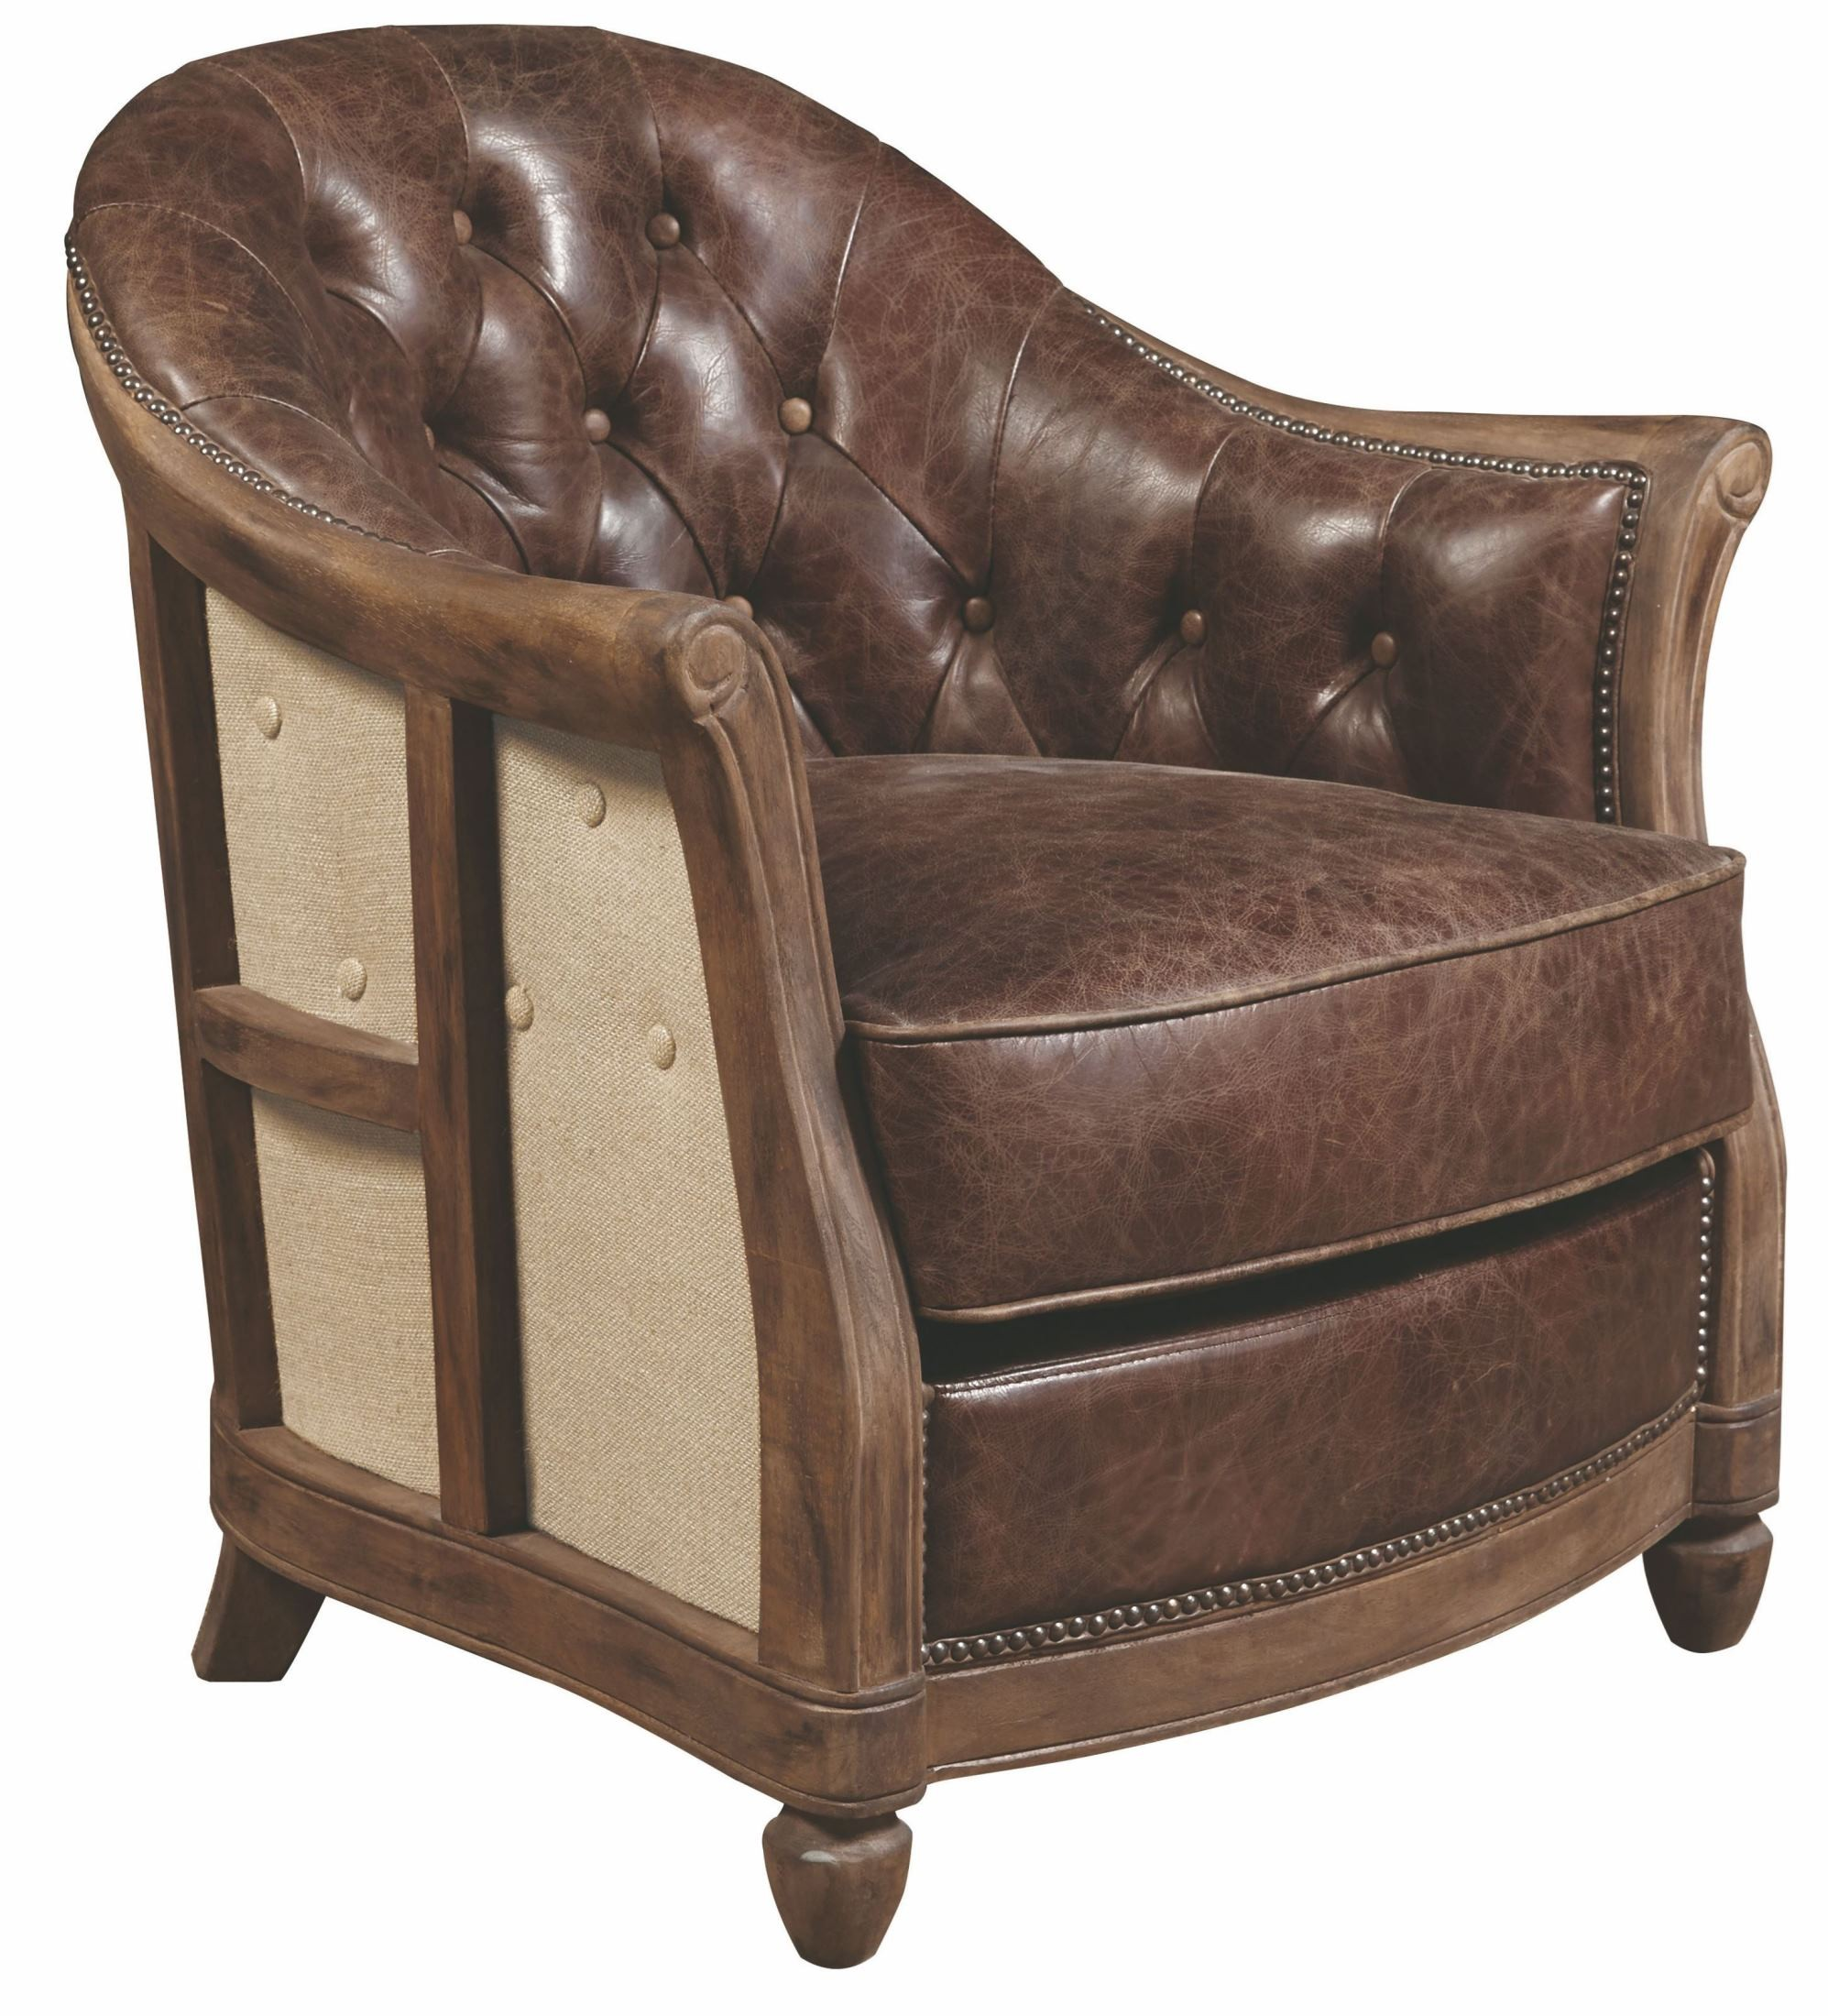 Brown Accent Chairs Andrew Brown Leather Accent Chair P006205 Pulaski